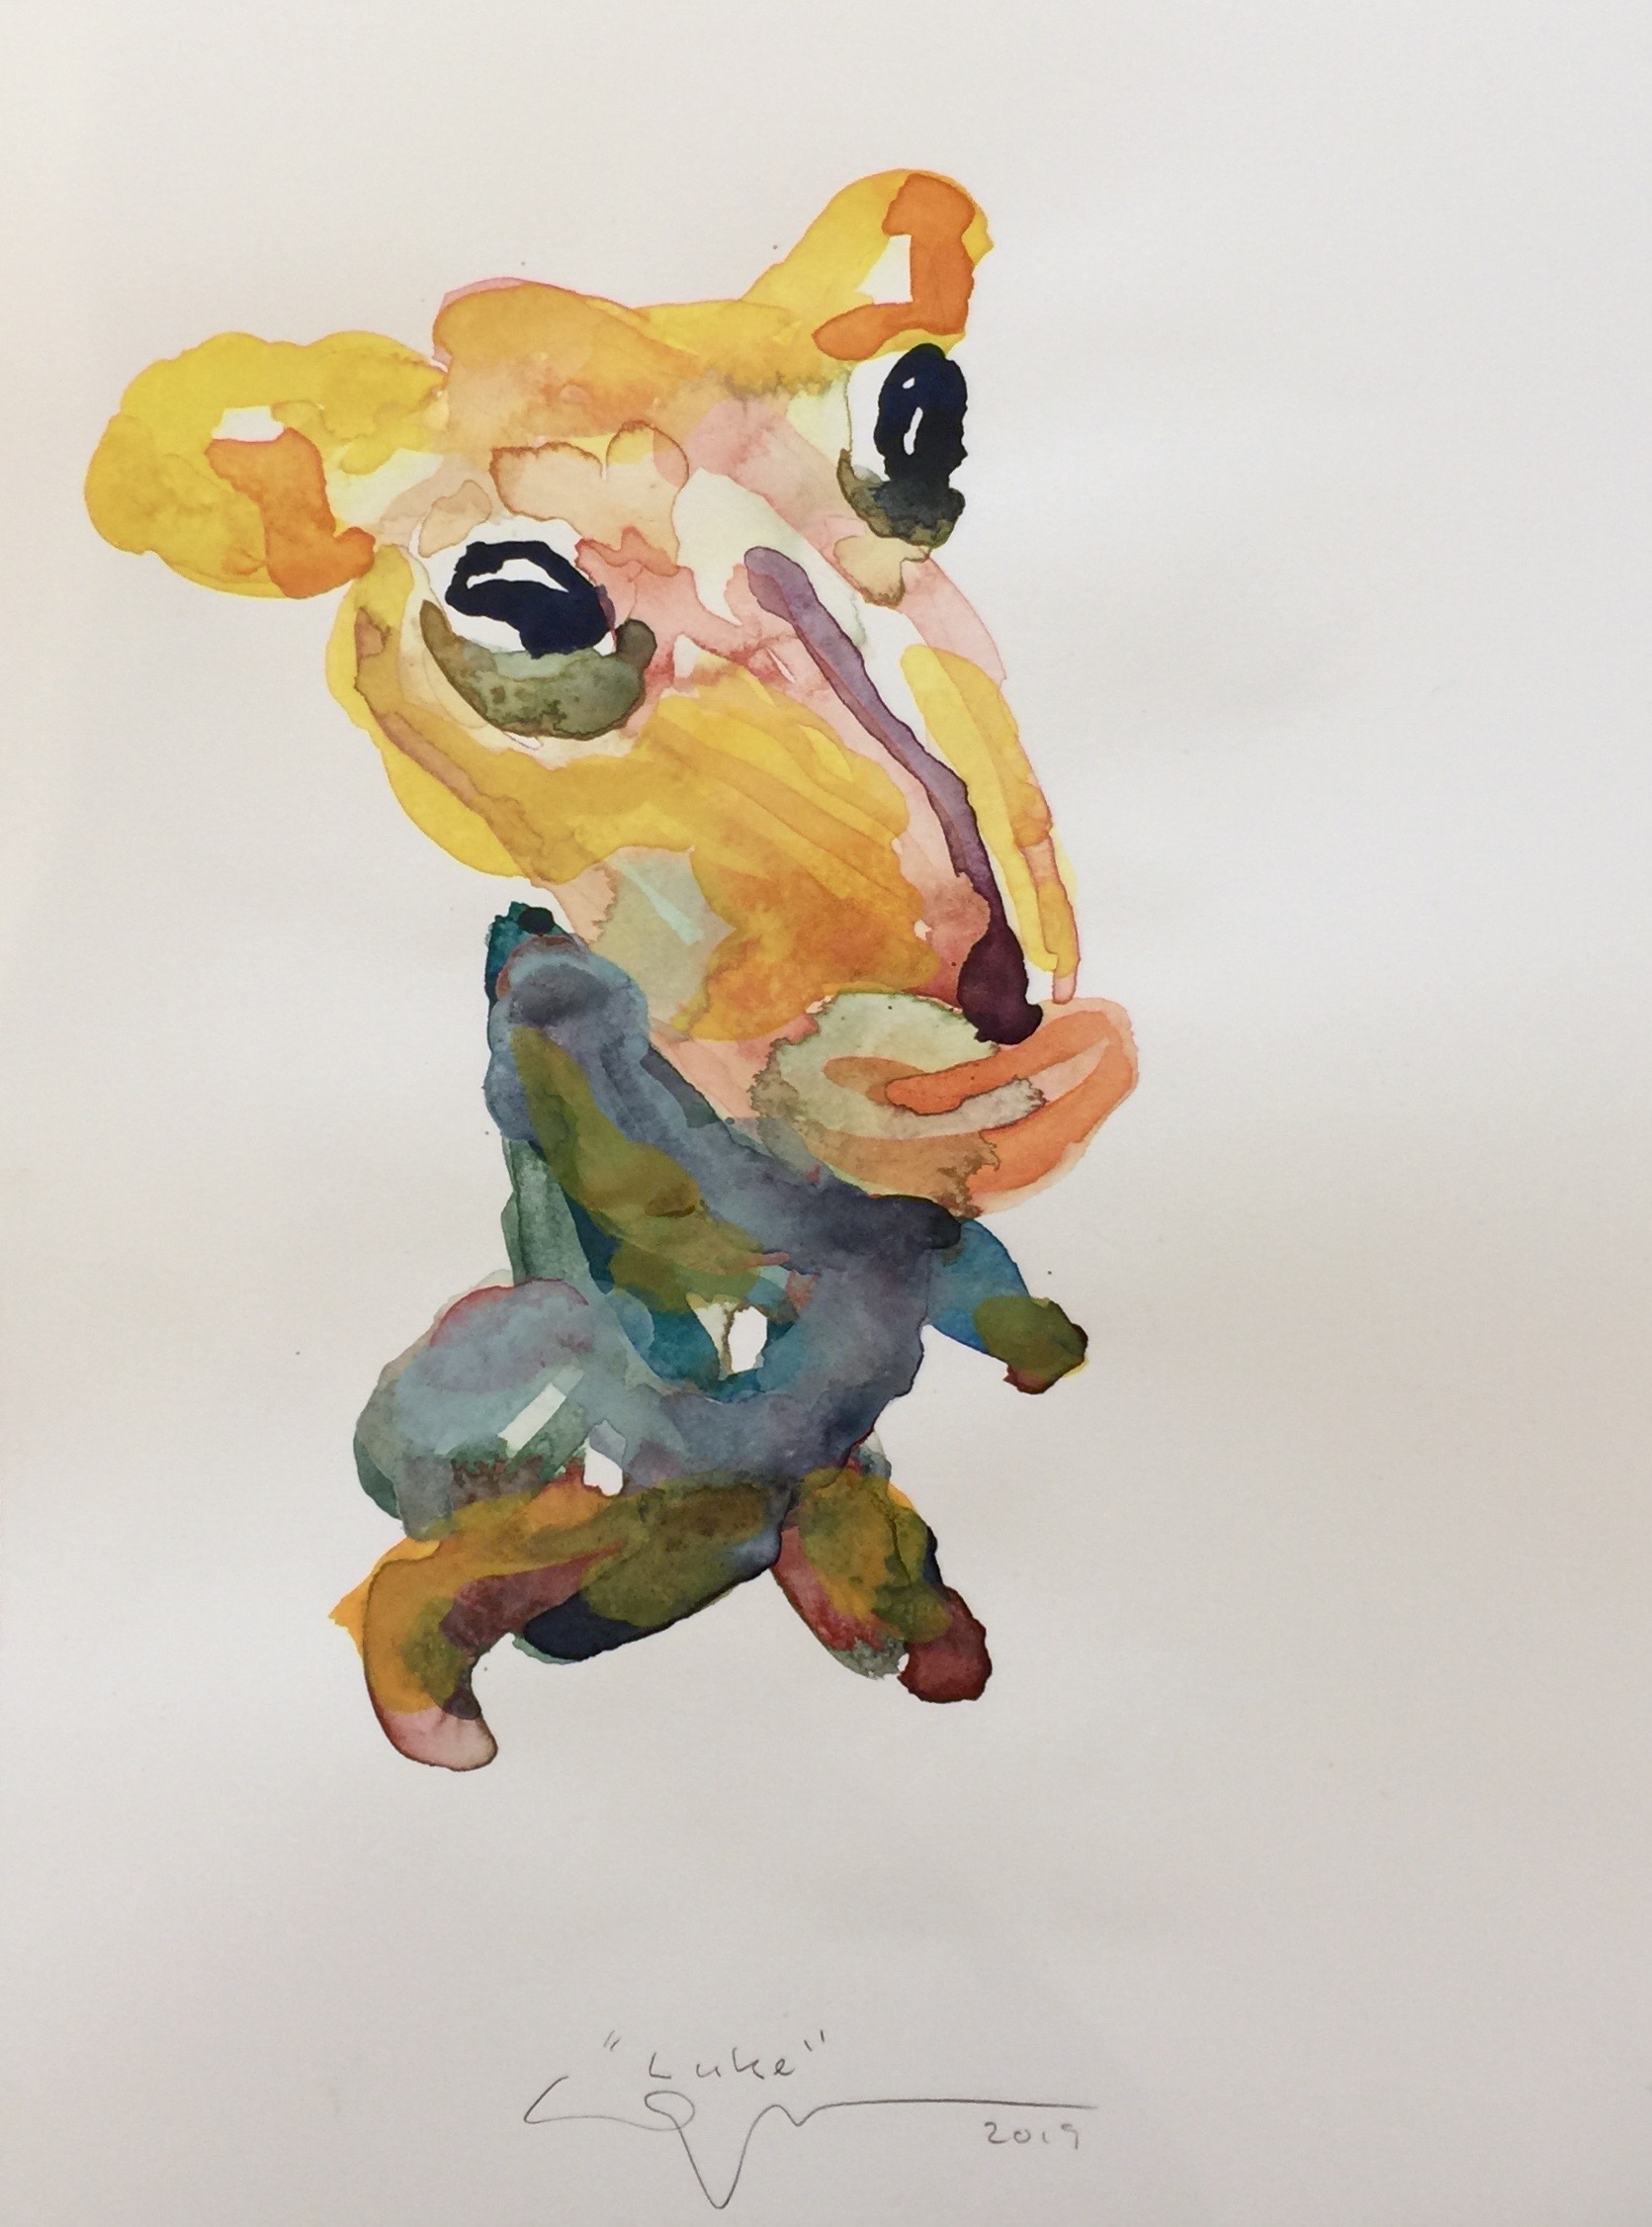 Peter Opheim   Luke   2019  Watercolor on paper  Signed, titled, and dated by the artist in pencil  Sheet: 16 x 12 inches  Framed: 17 x 13 inches